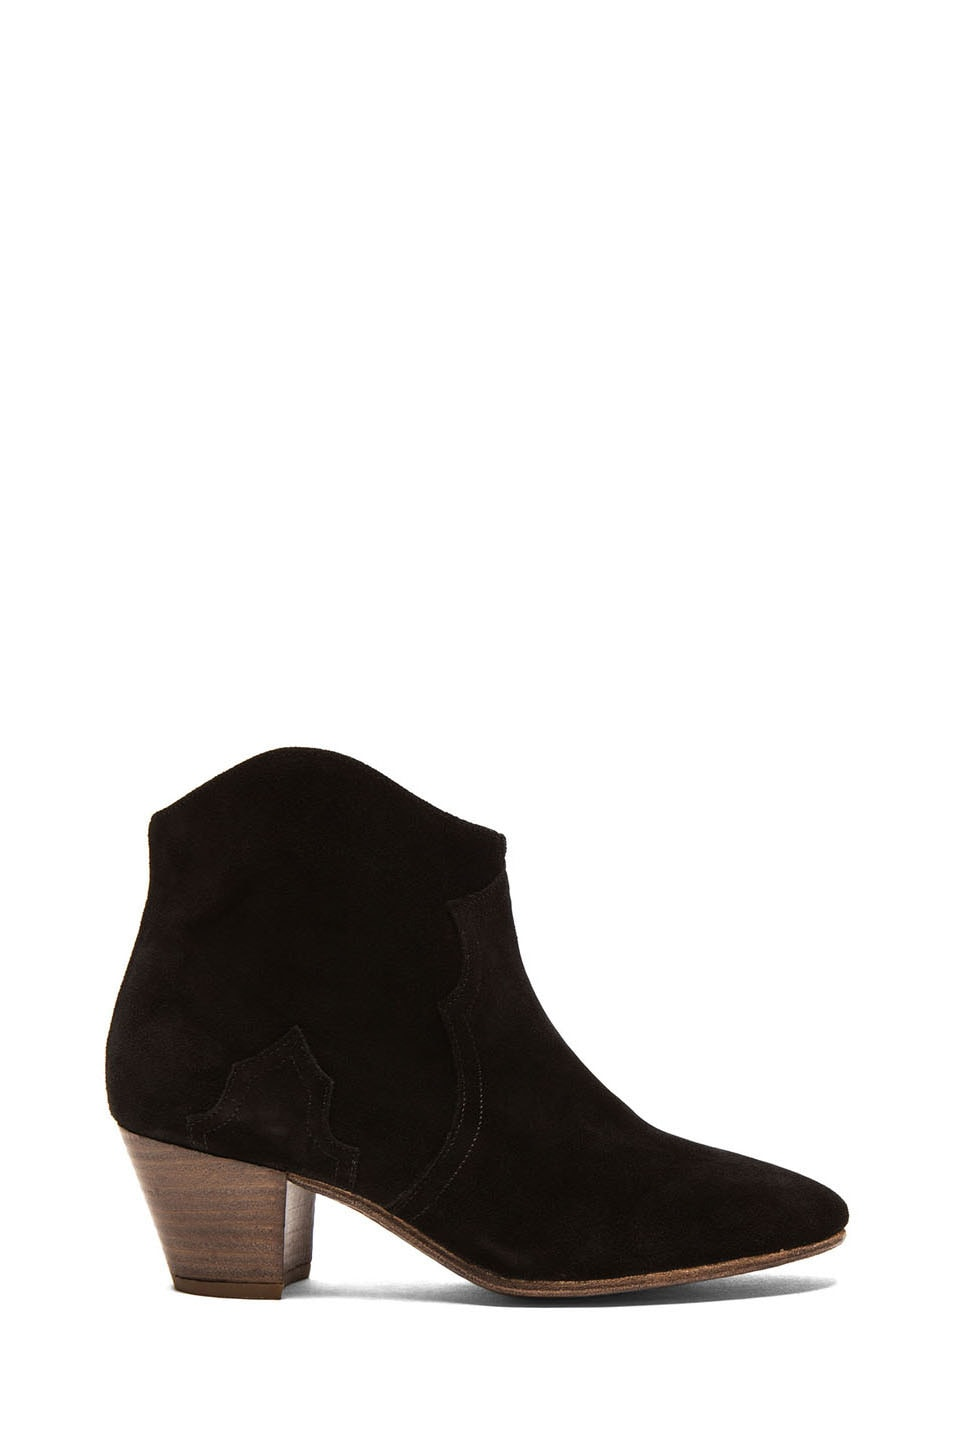 Image 1 of Isabel Marant Cluster Calfskin Leather Boots in Black